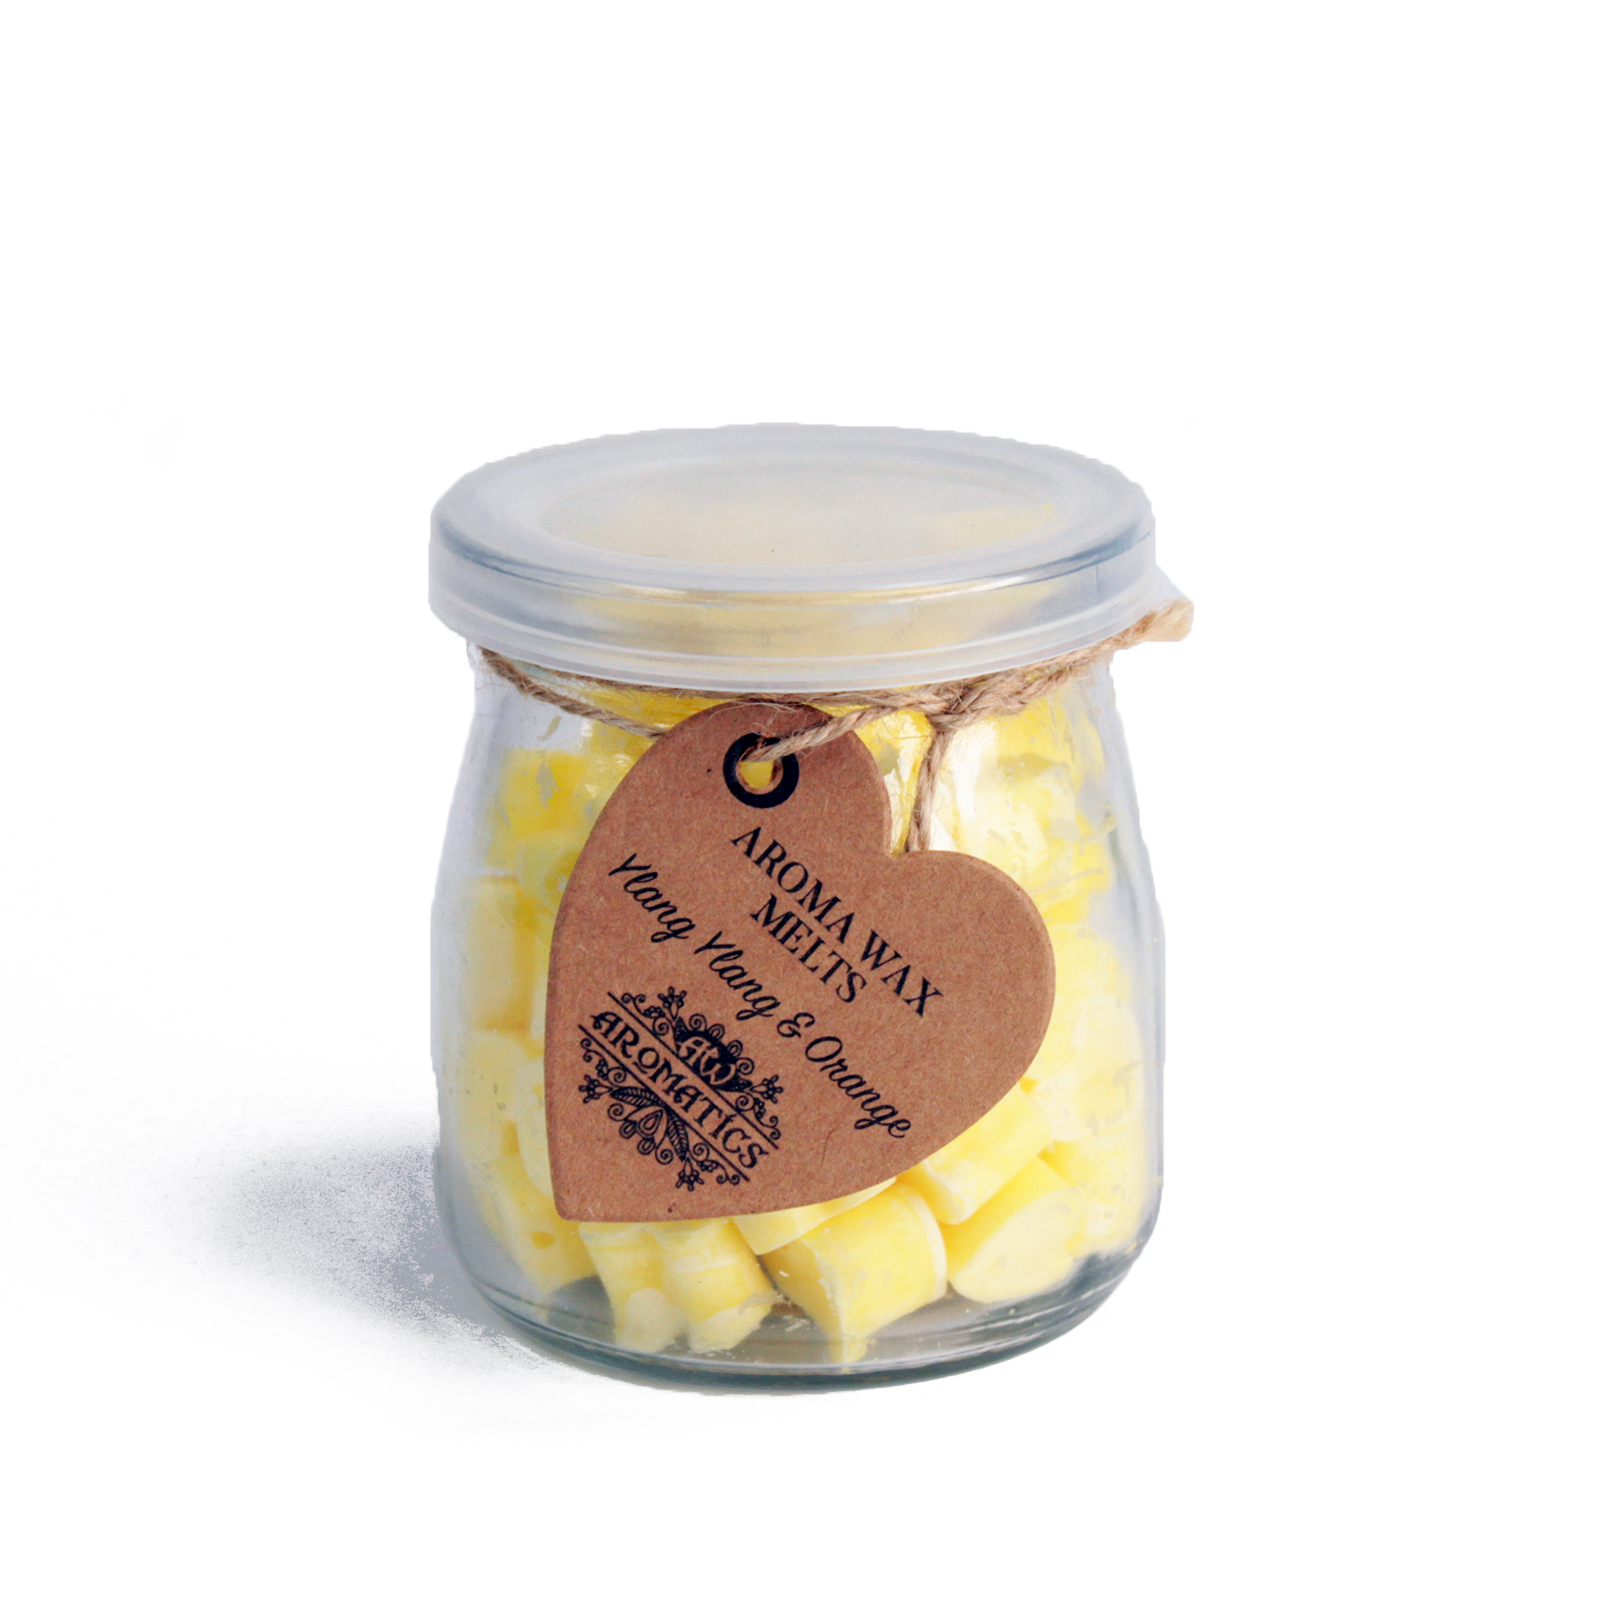 Aroma Wax Melts - Ylang Ylang & Orange